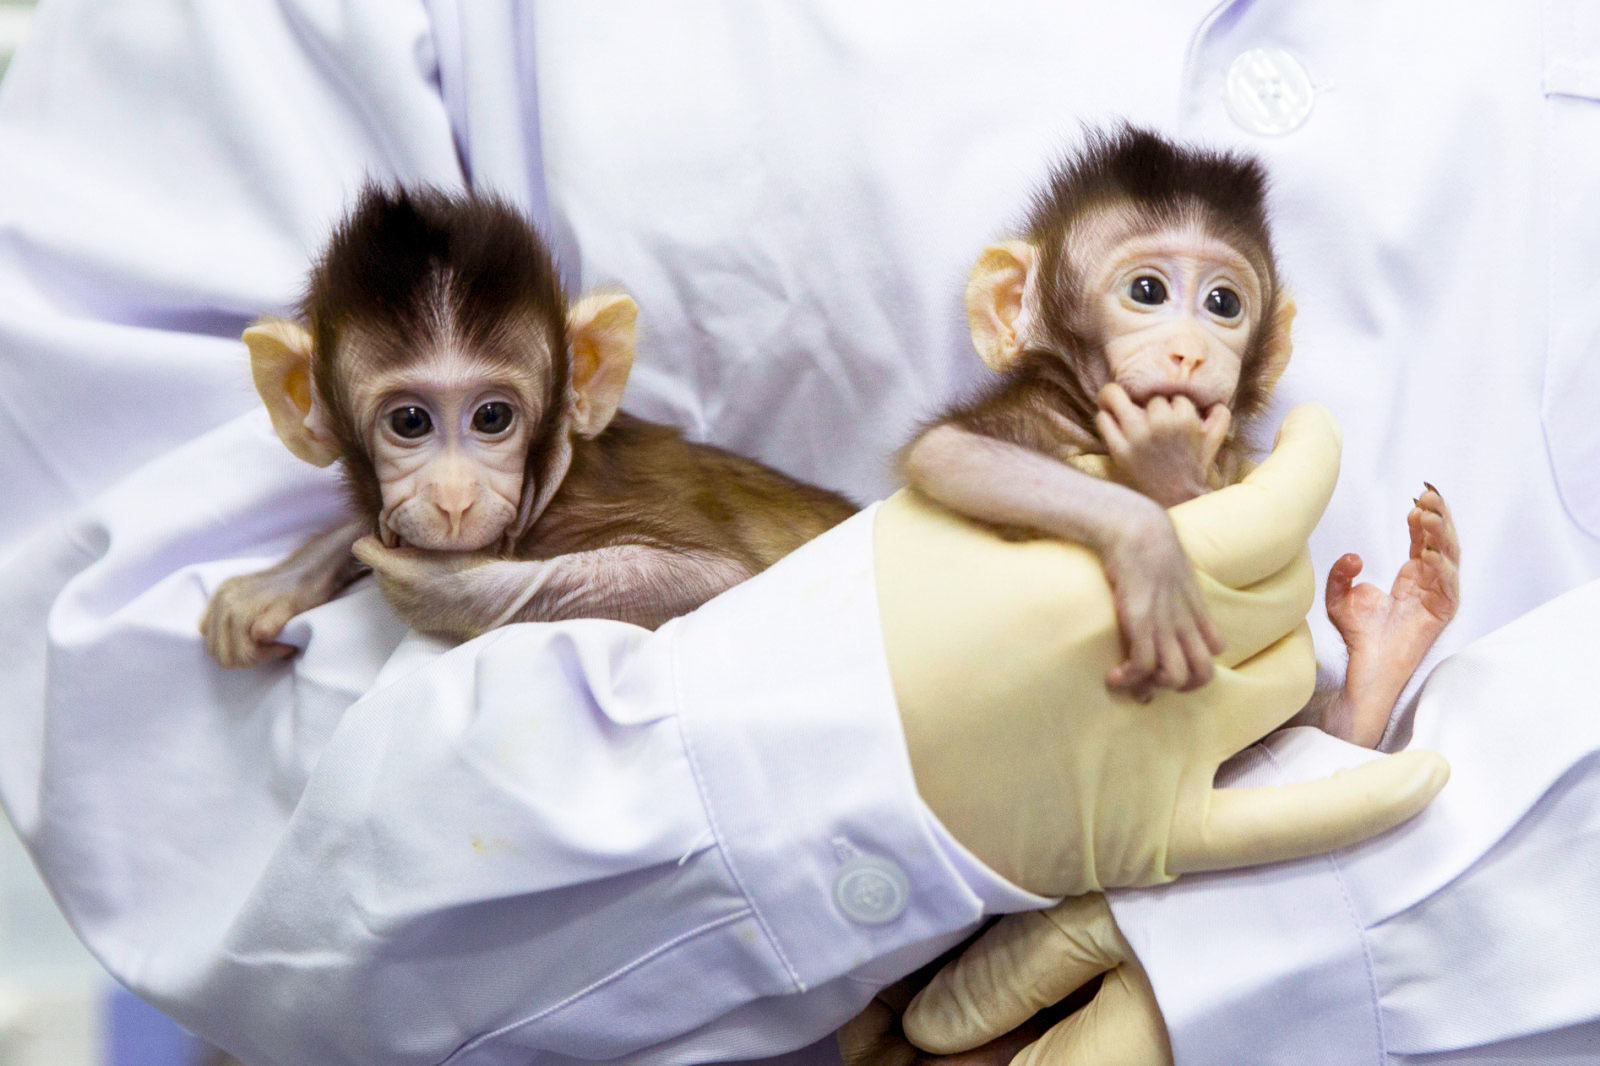 Scientists clone monkeys for the first time It theoretically opens the Pandora's Box of human cloning.